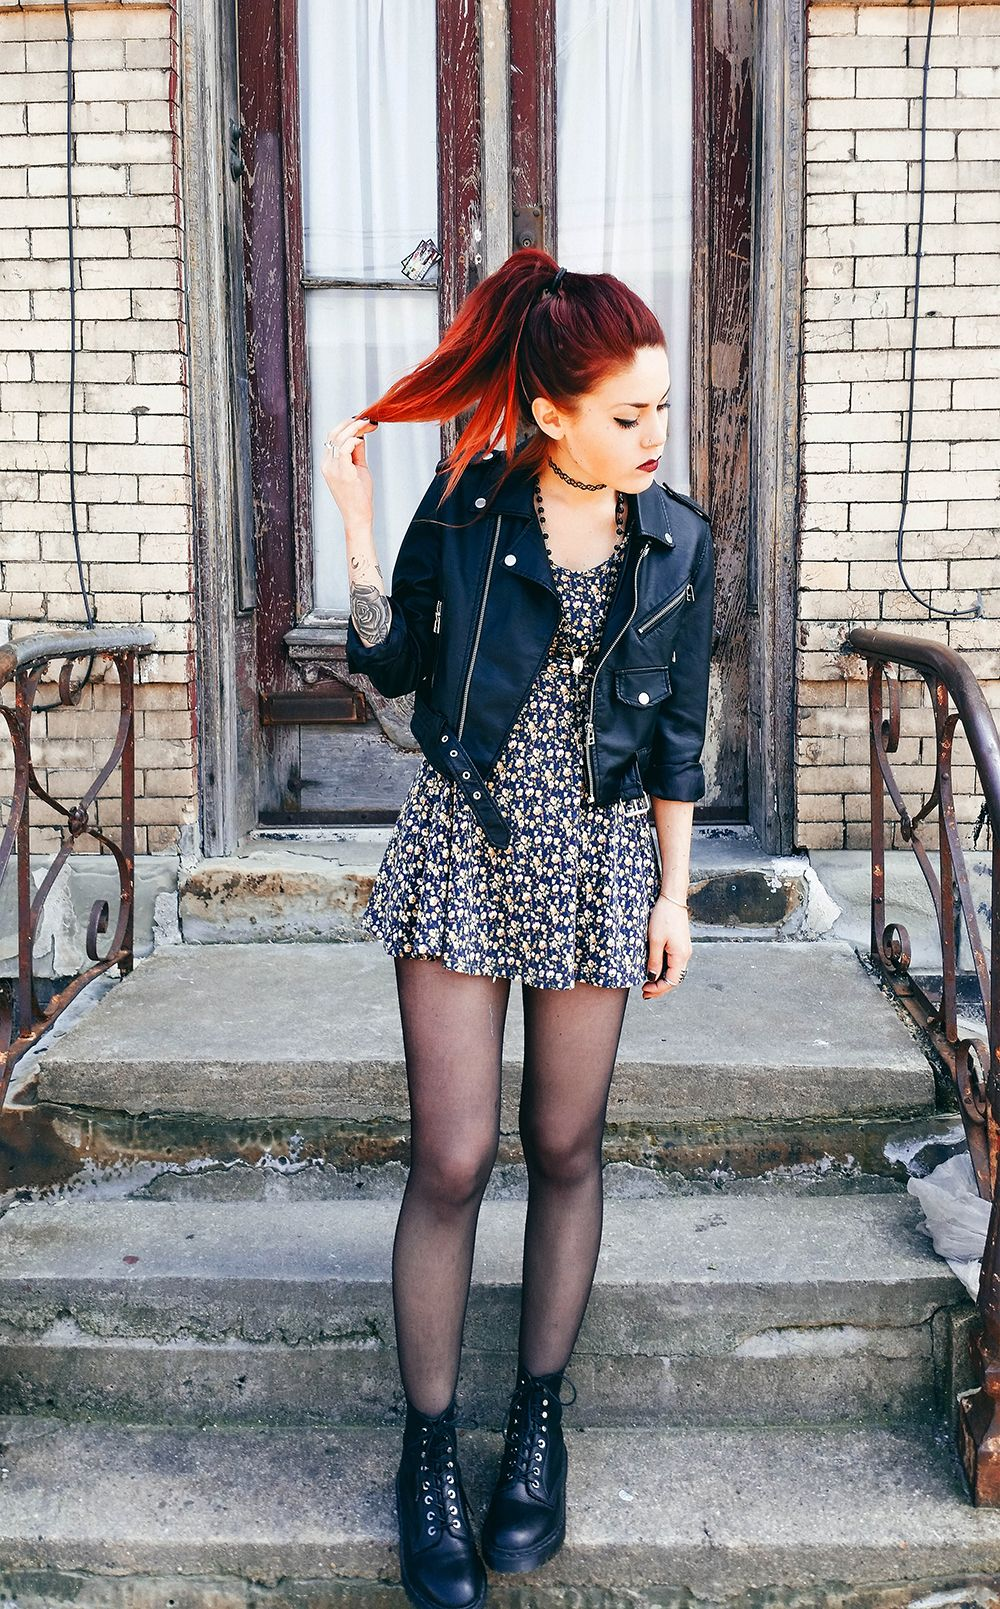 Floral dress, leather jacket and docs